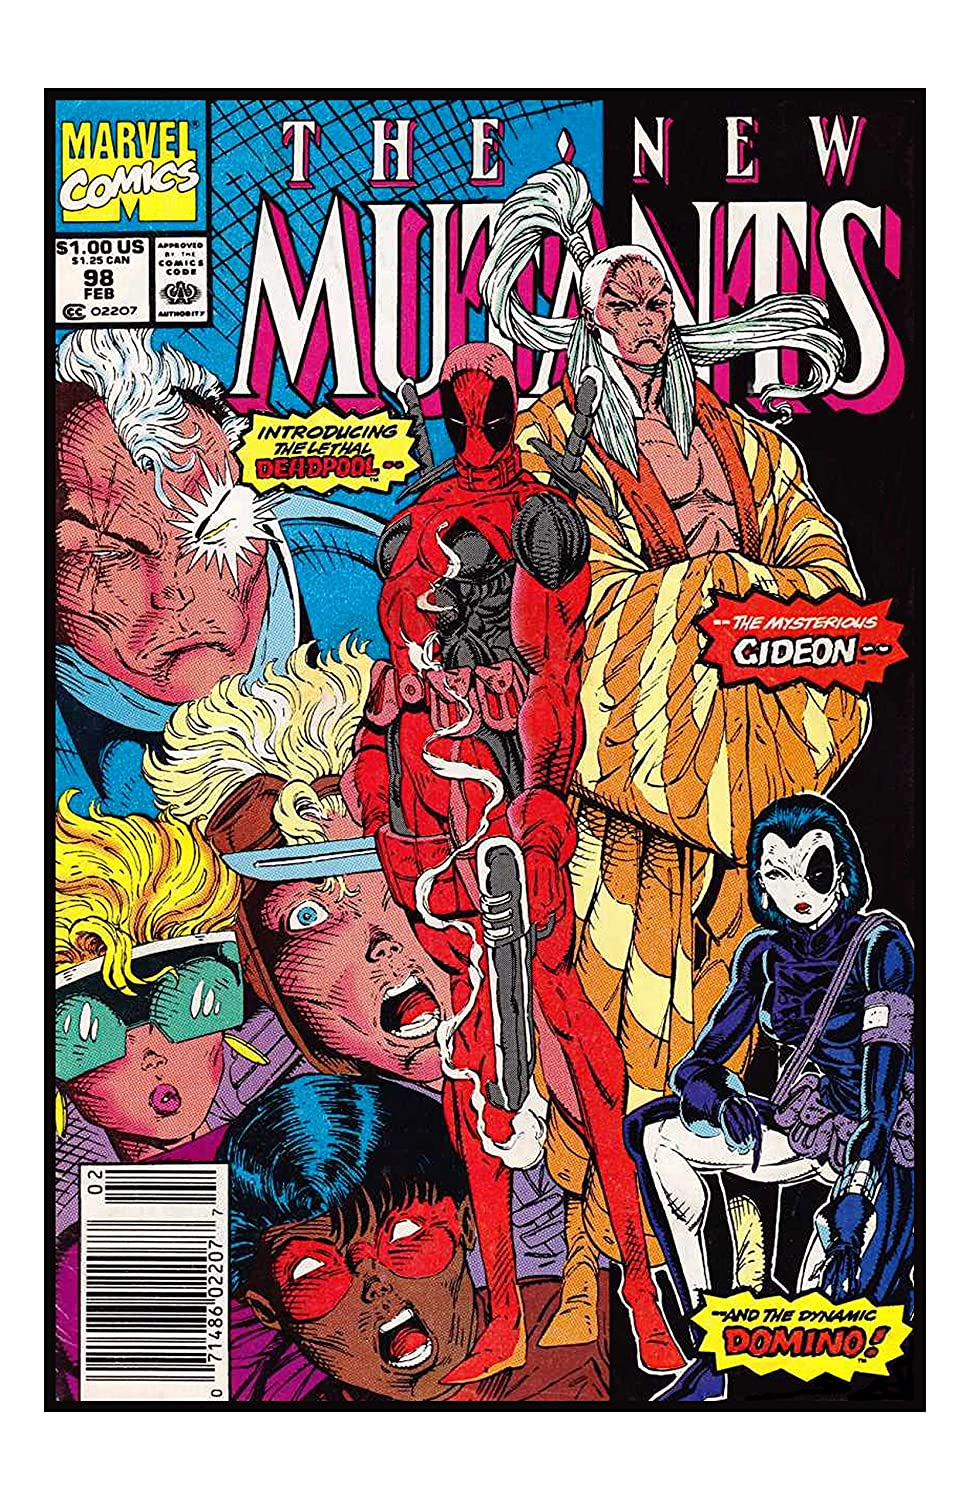 все цены на  Marvel Comics Stan Lee The New Mutants #98 Dead Pool 1st Appearance Unsigned 11x17 Comic Cover Photograph  в интернете